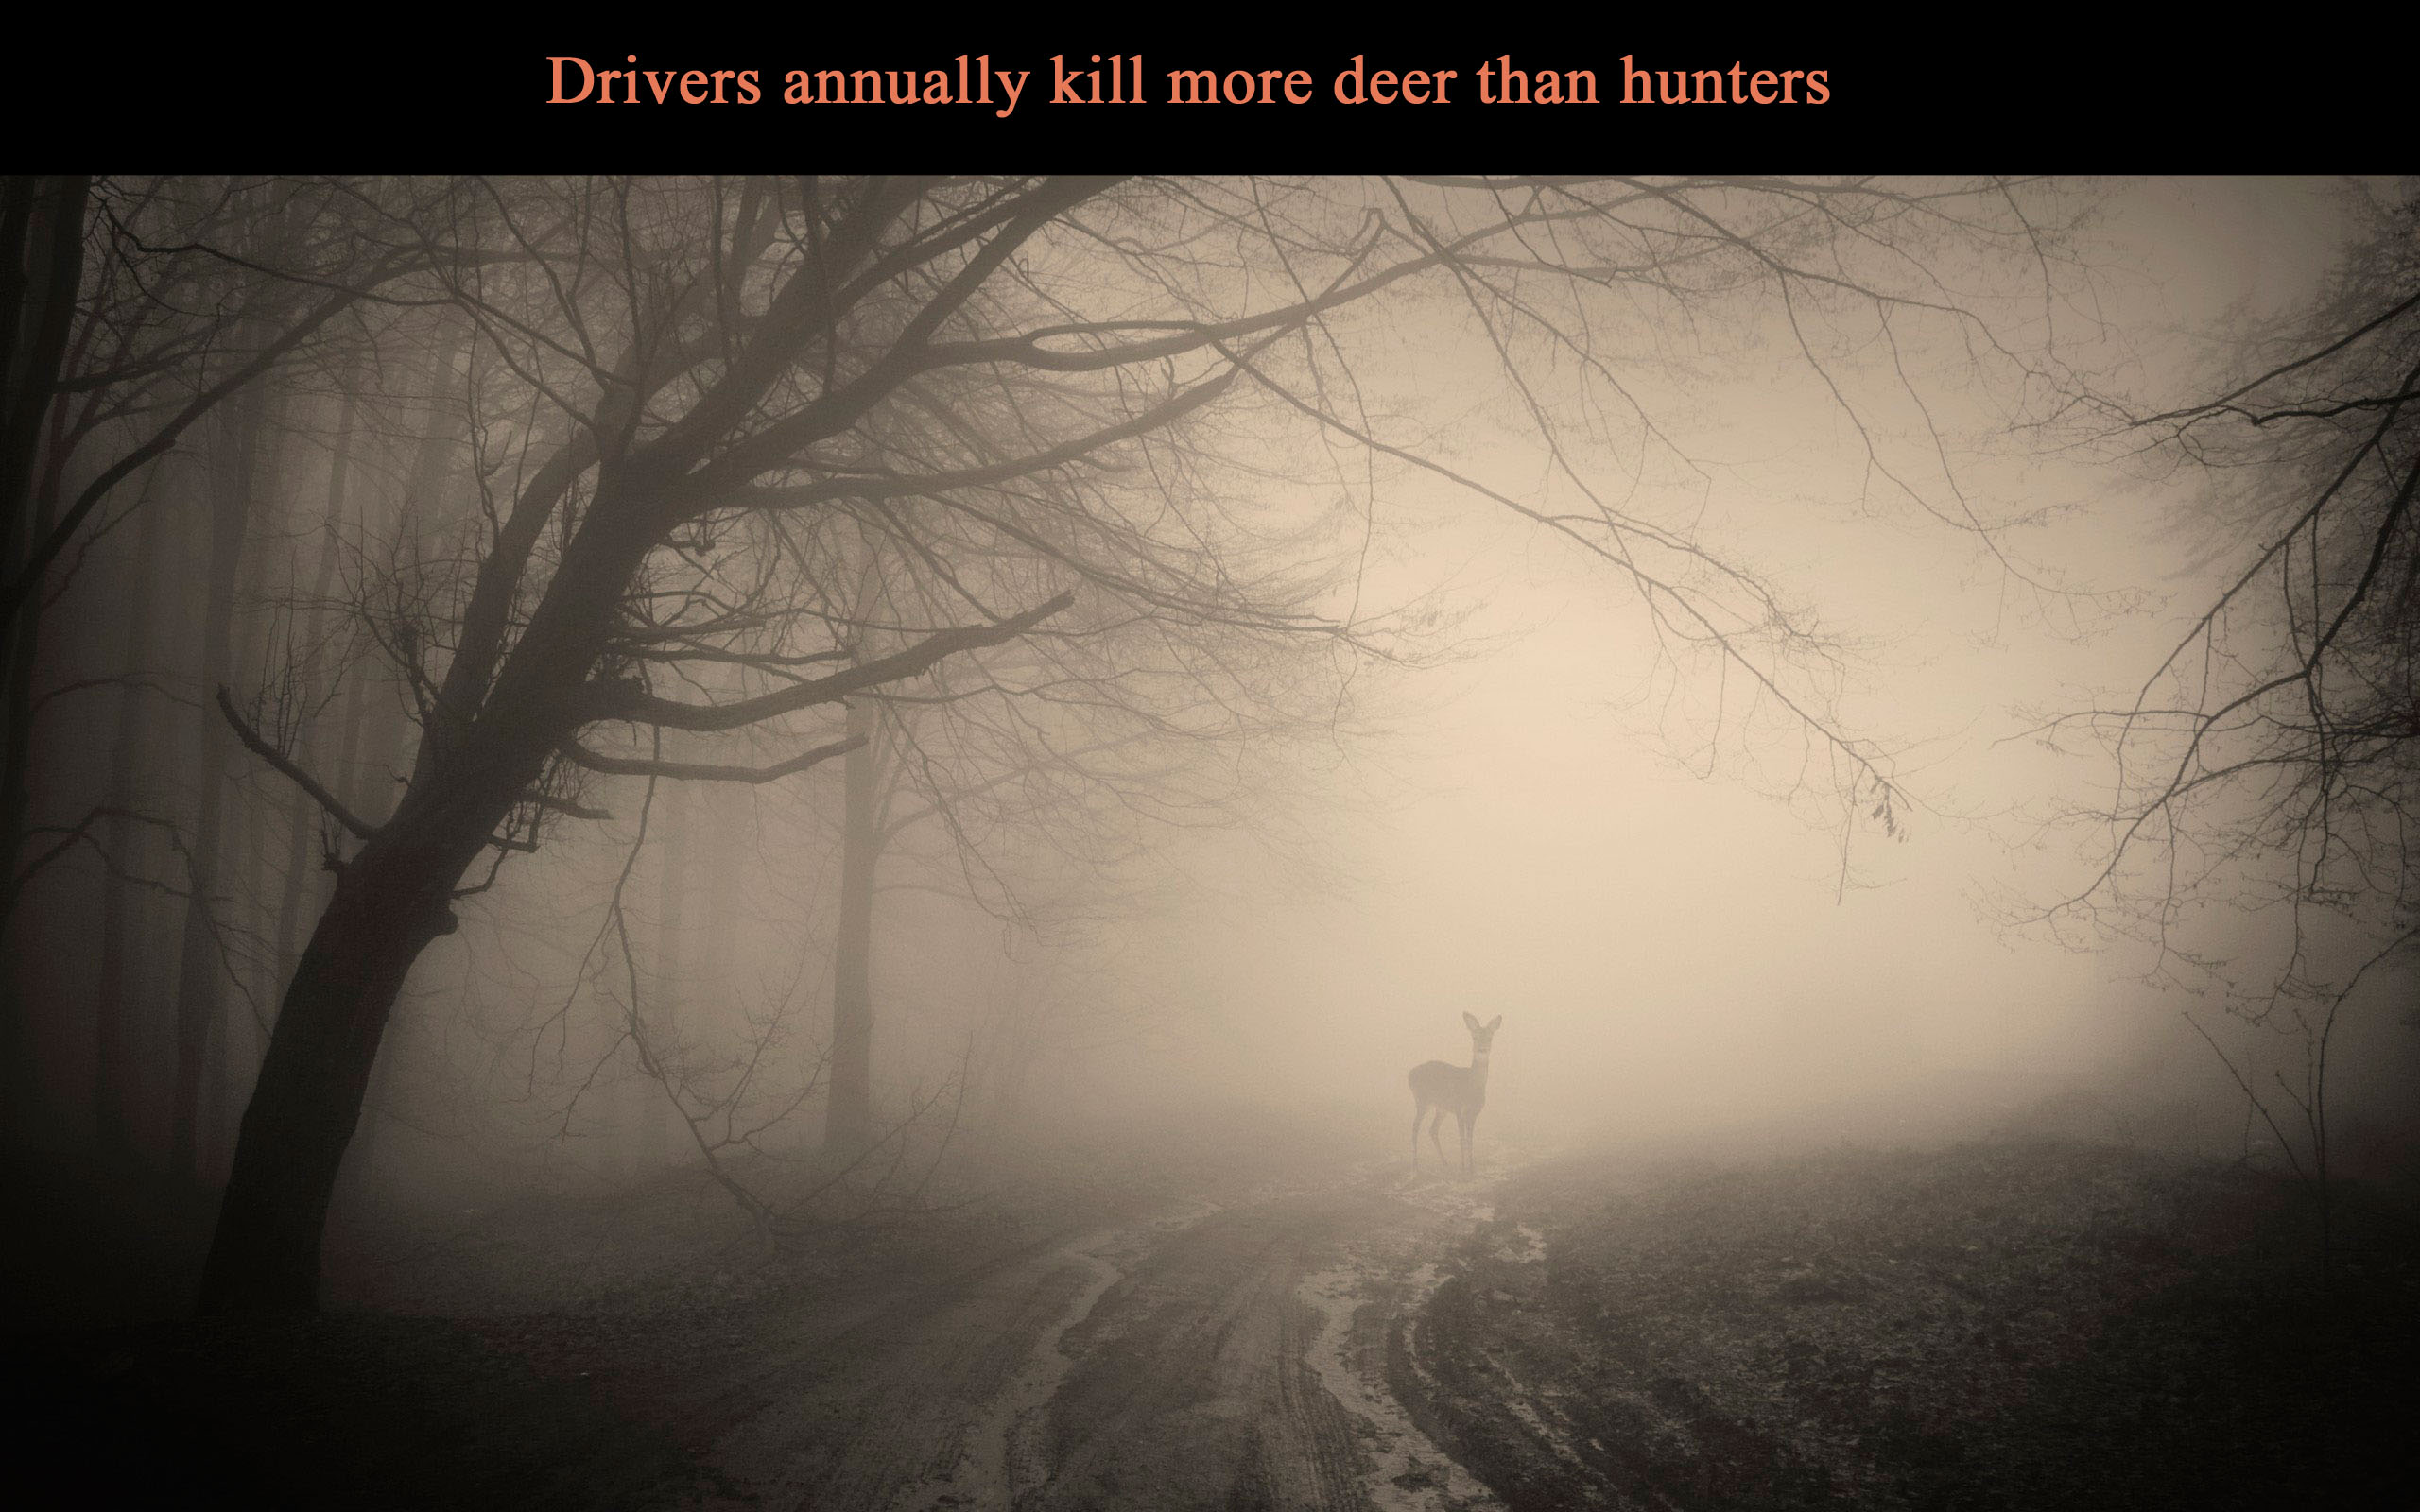 car, driver, driver road, driver kill deer